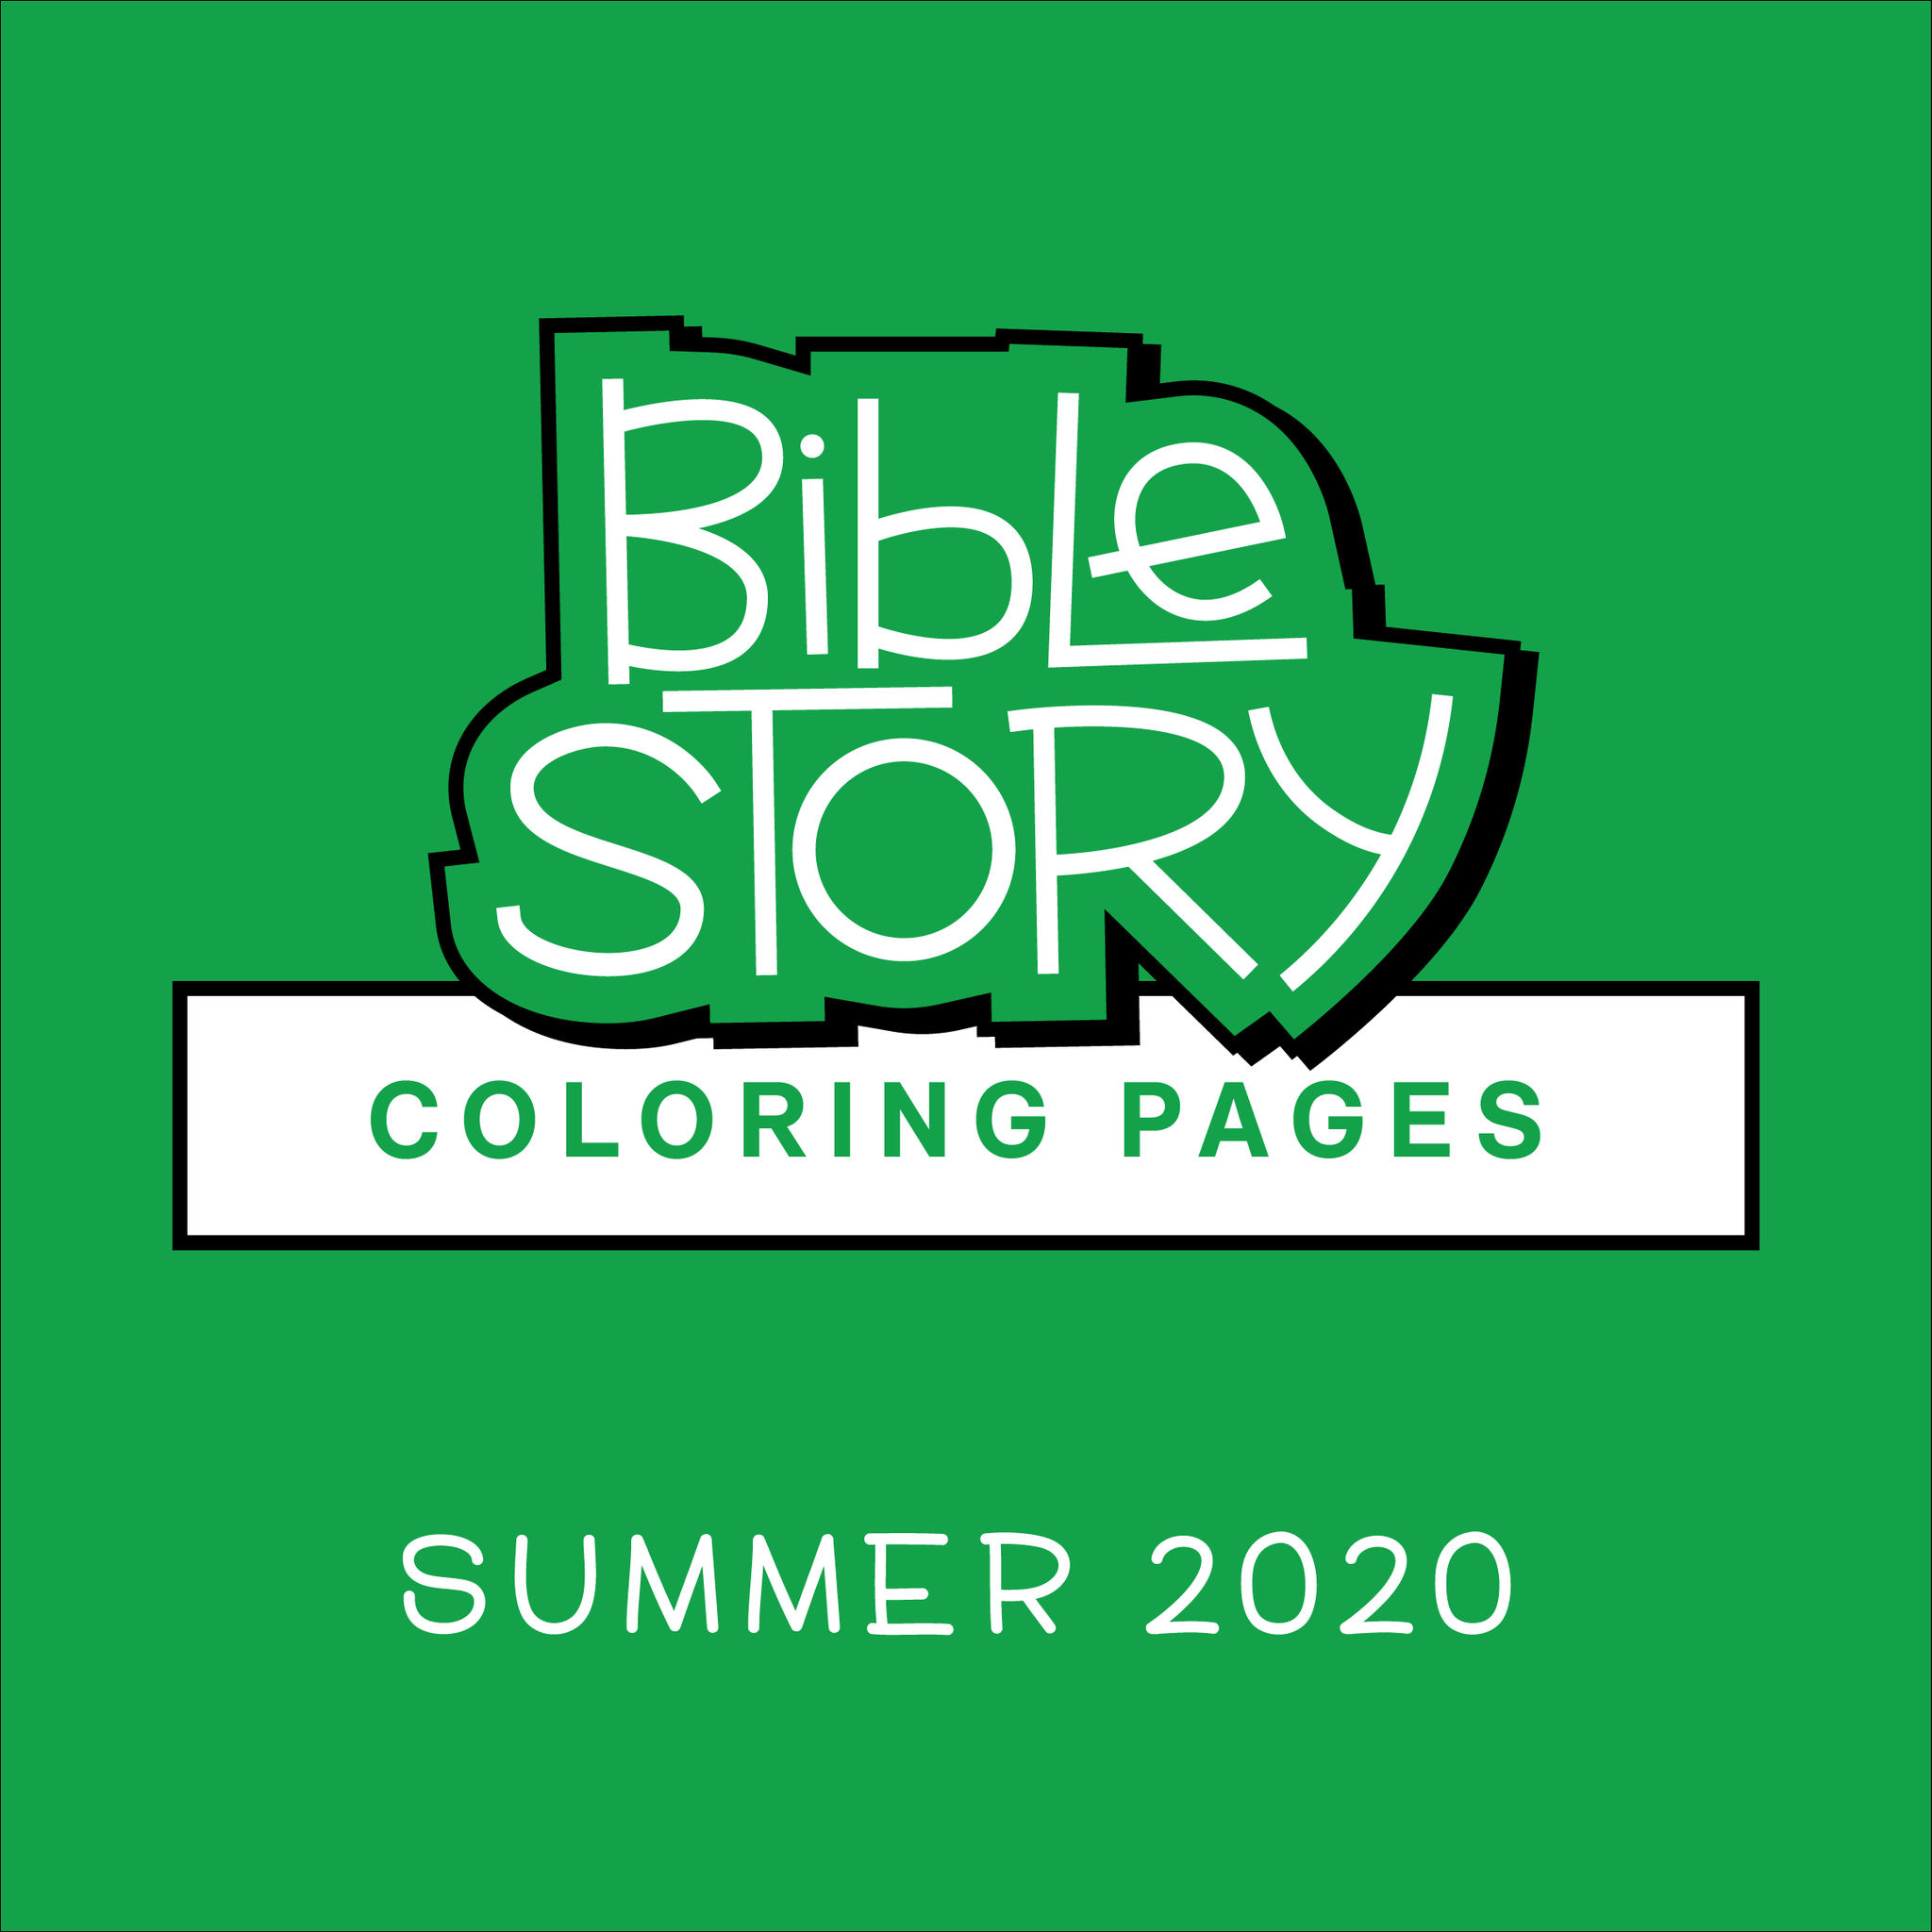 Bible Story Coloring Pages: Summer 2020